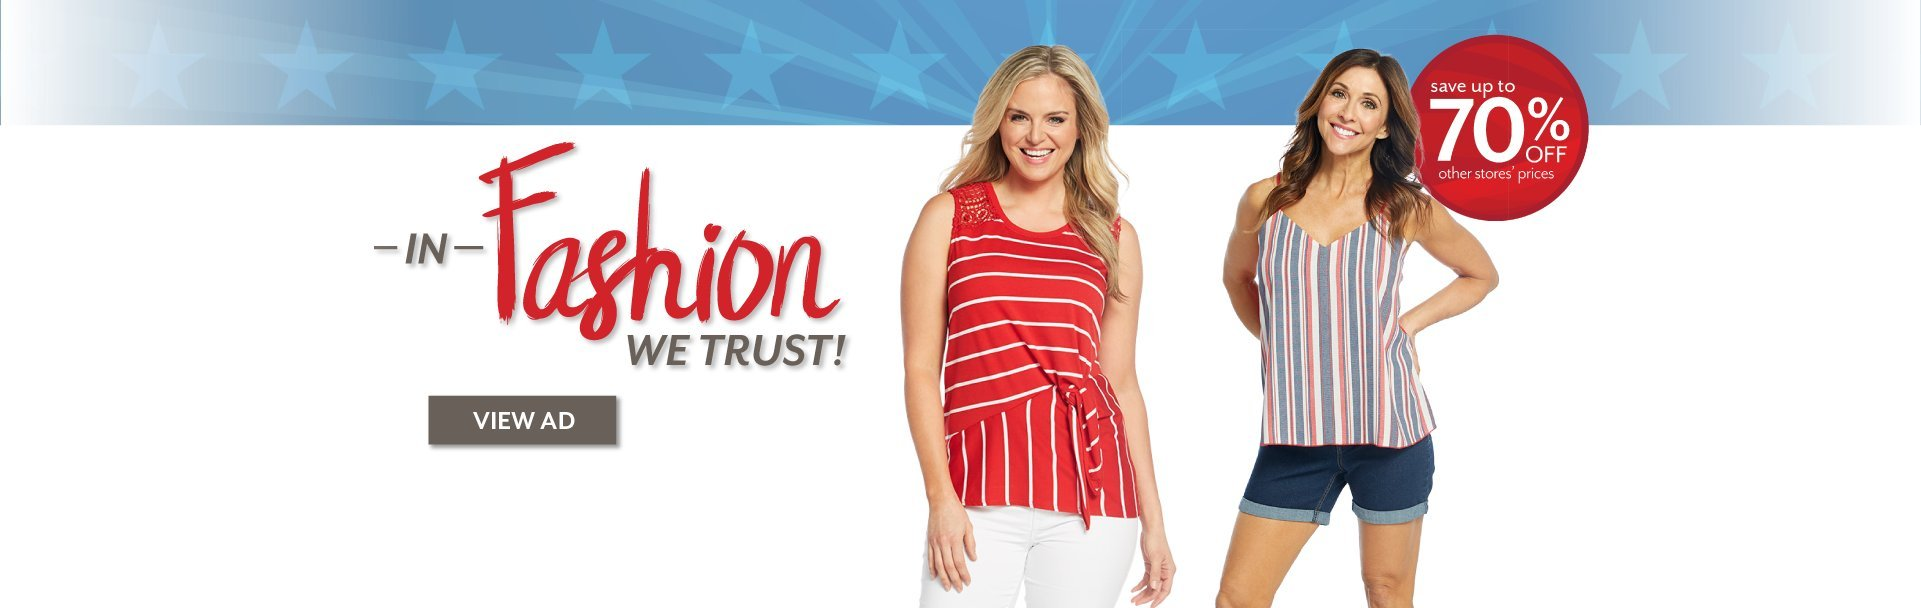 422b90f4f Shop the latest trends in American Inspirations at Bealls Outlet